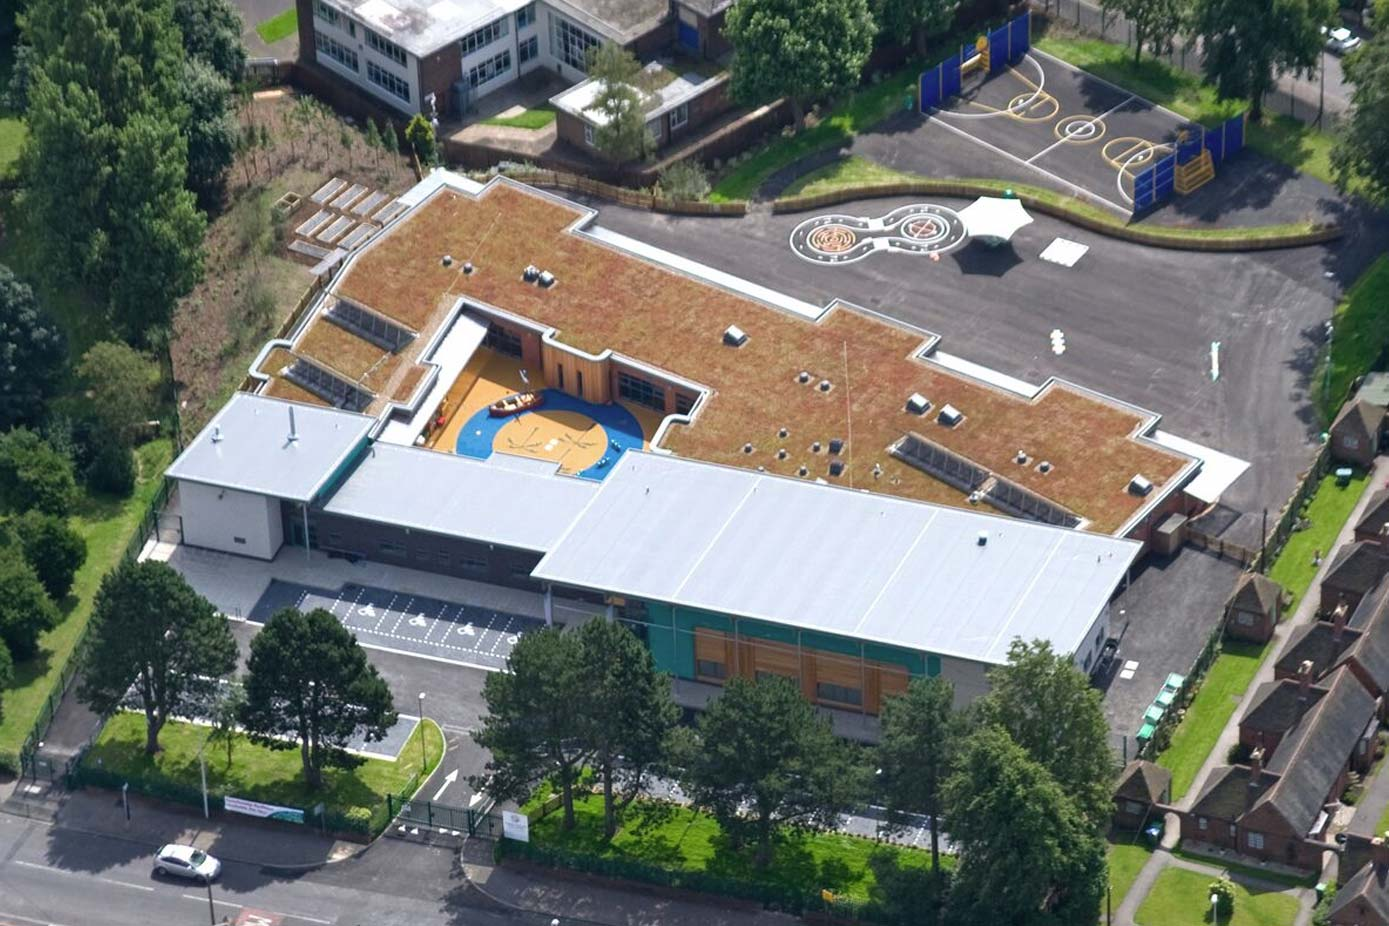 Crocketts Primary school installed a green roof